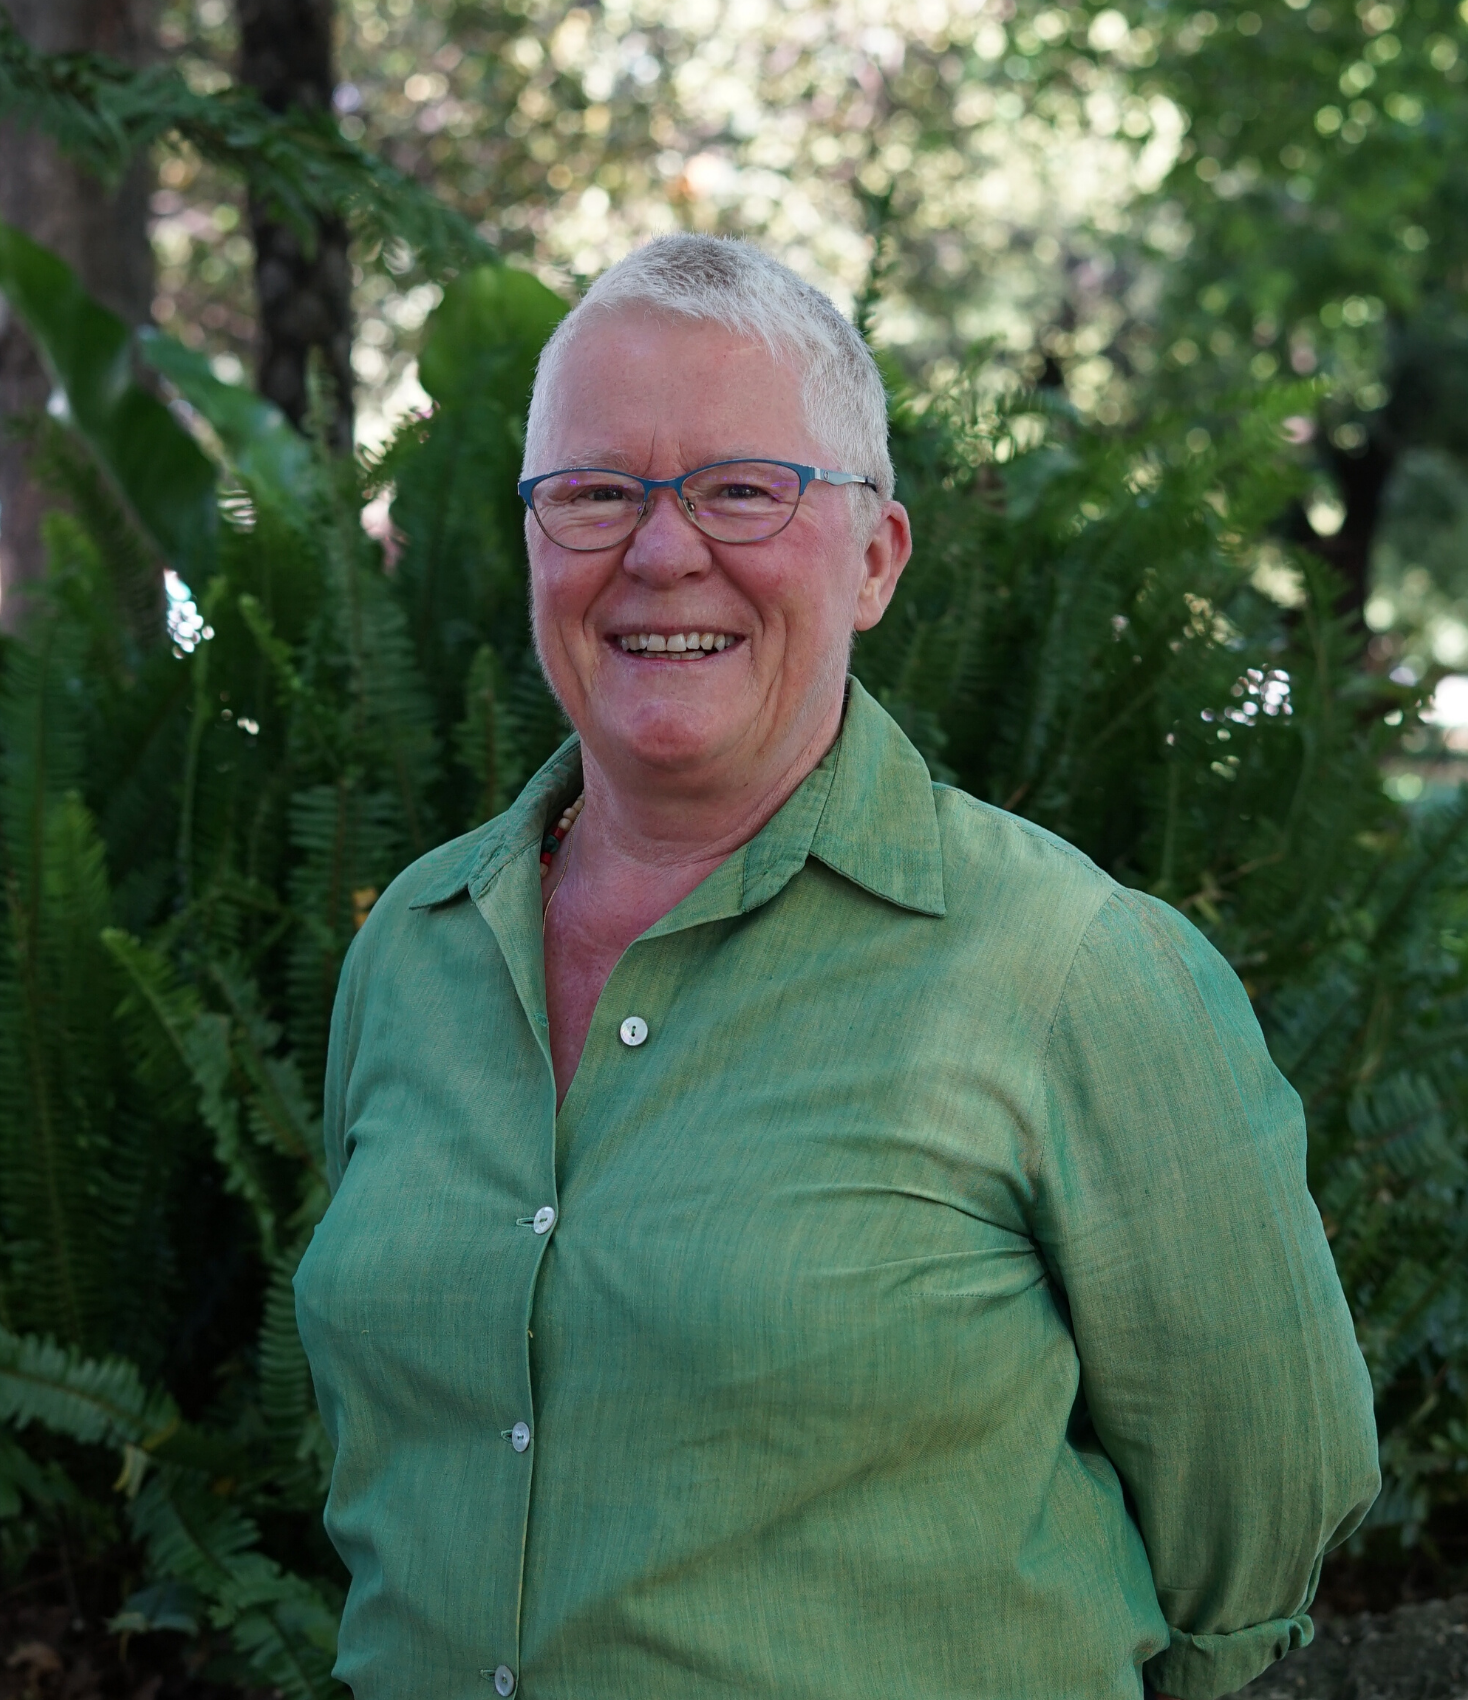 Smiling woman with short white hair and wire framed glasses, wearing a light green button down shirt with green foliage in background